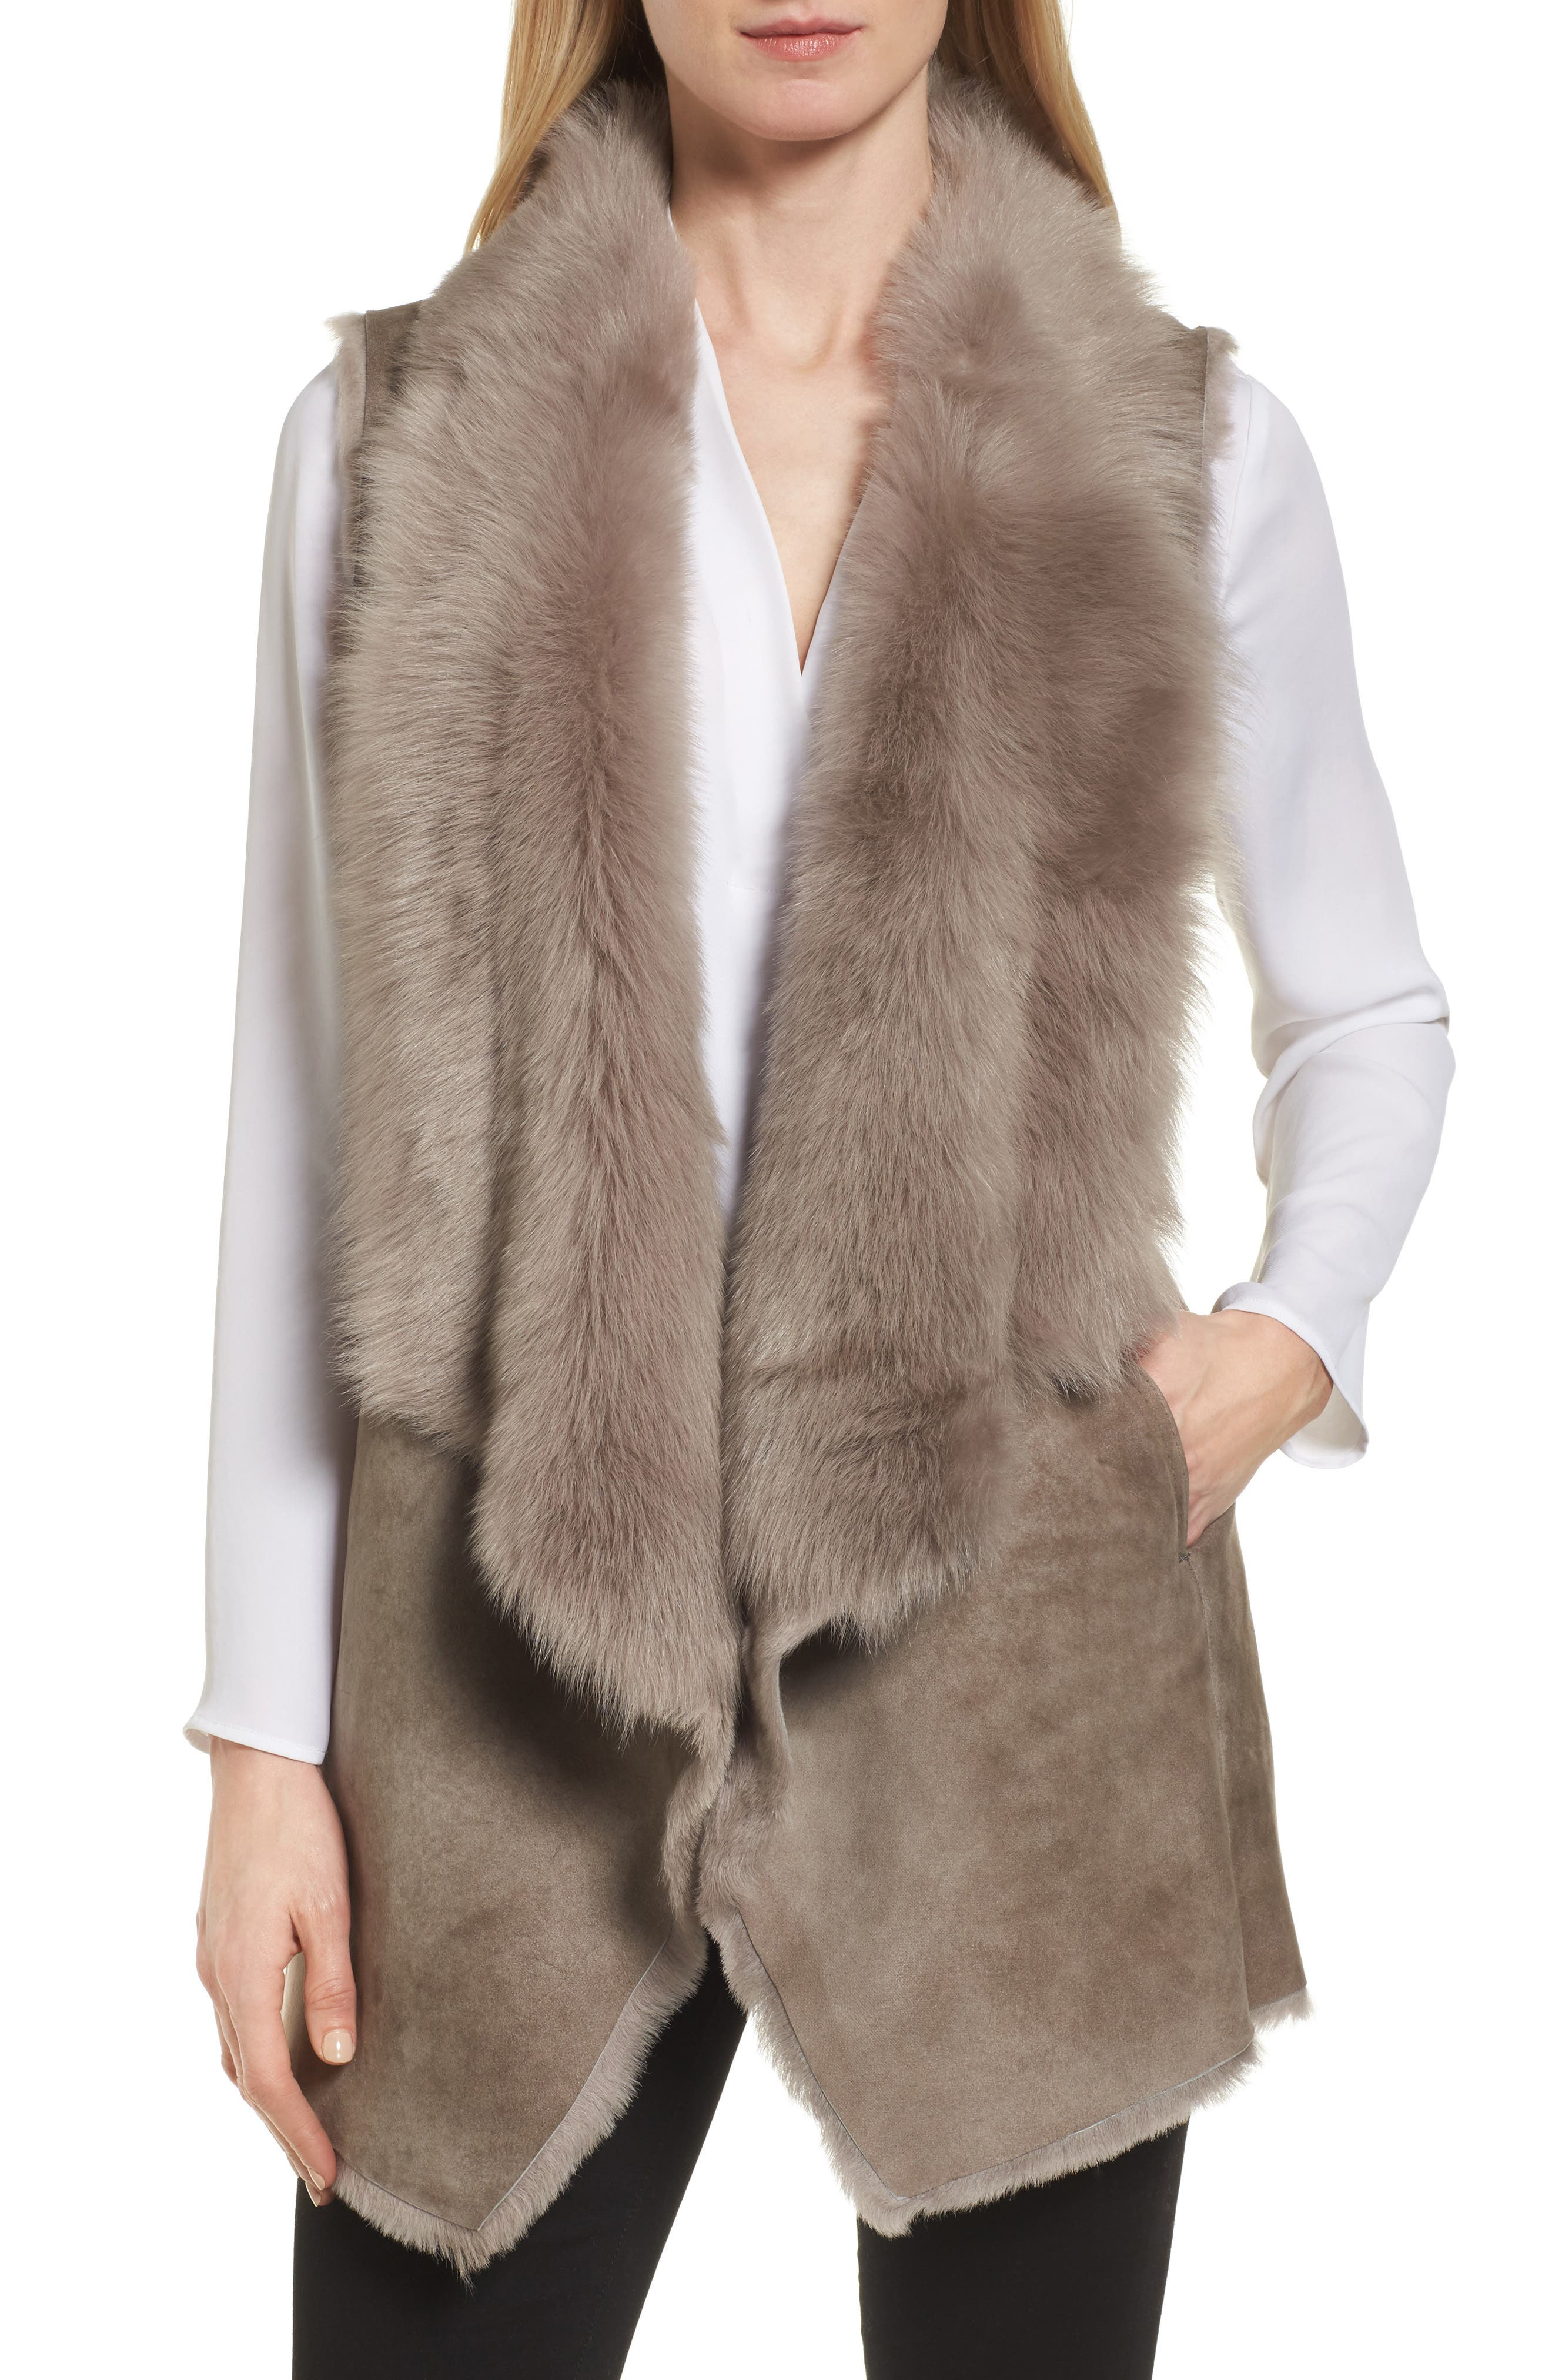 HIDESOCIETY Angie Genuine Toscana Shearling Drape Front Vest